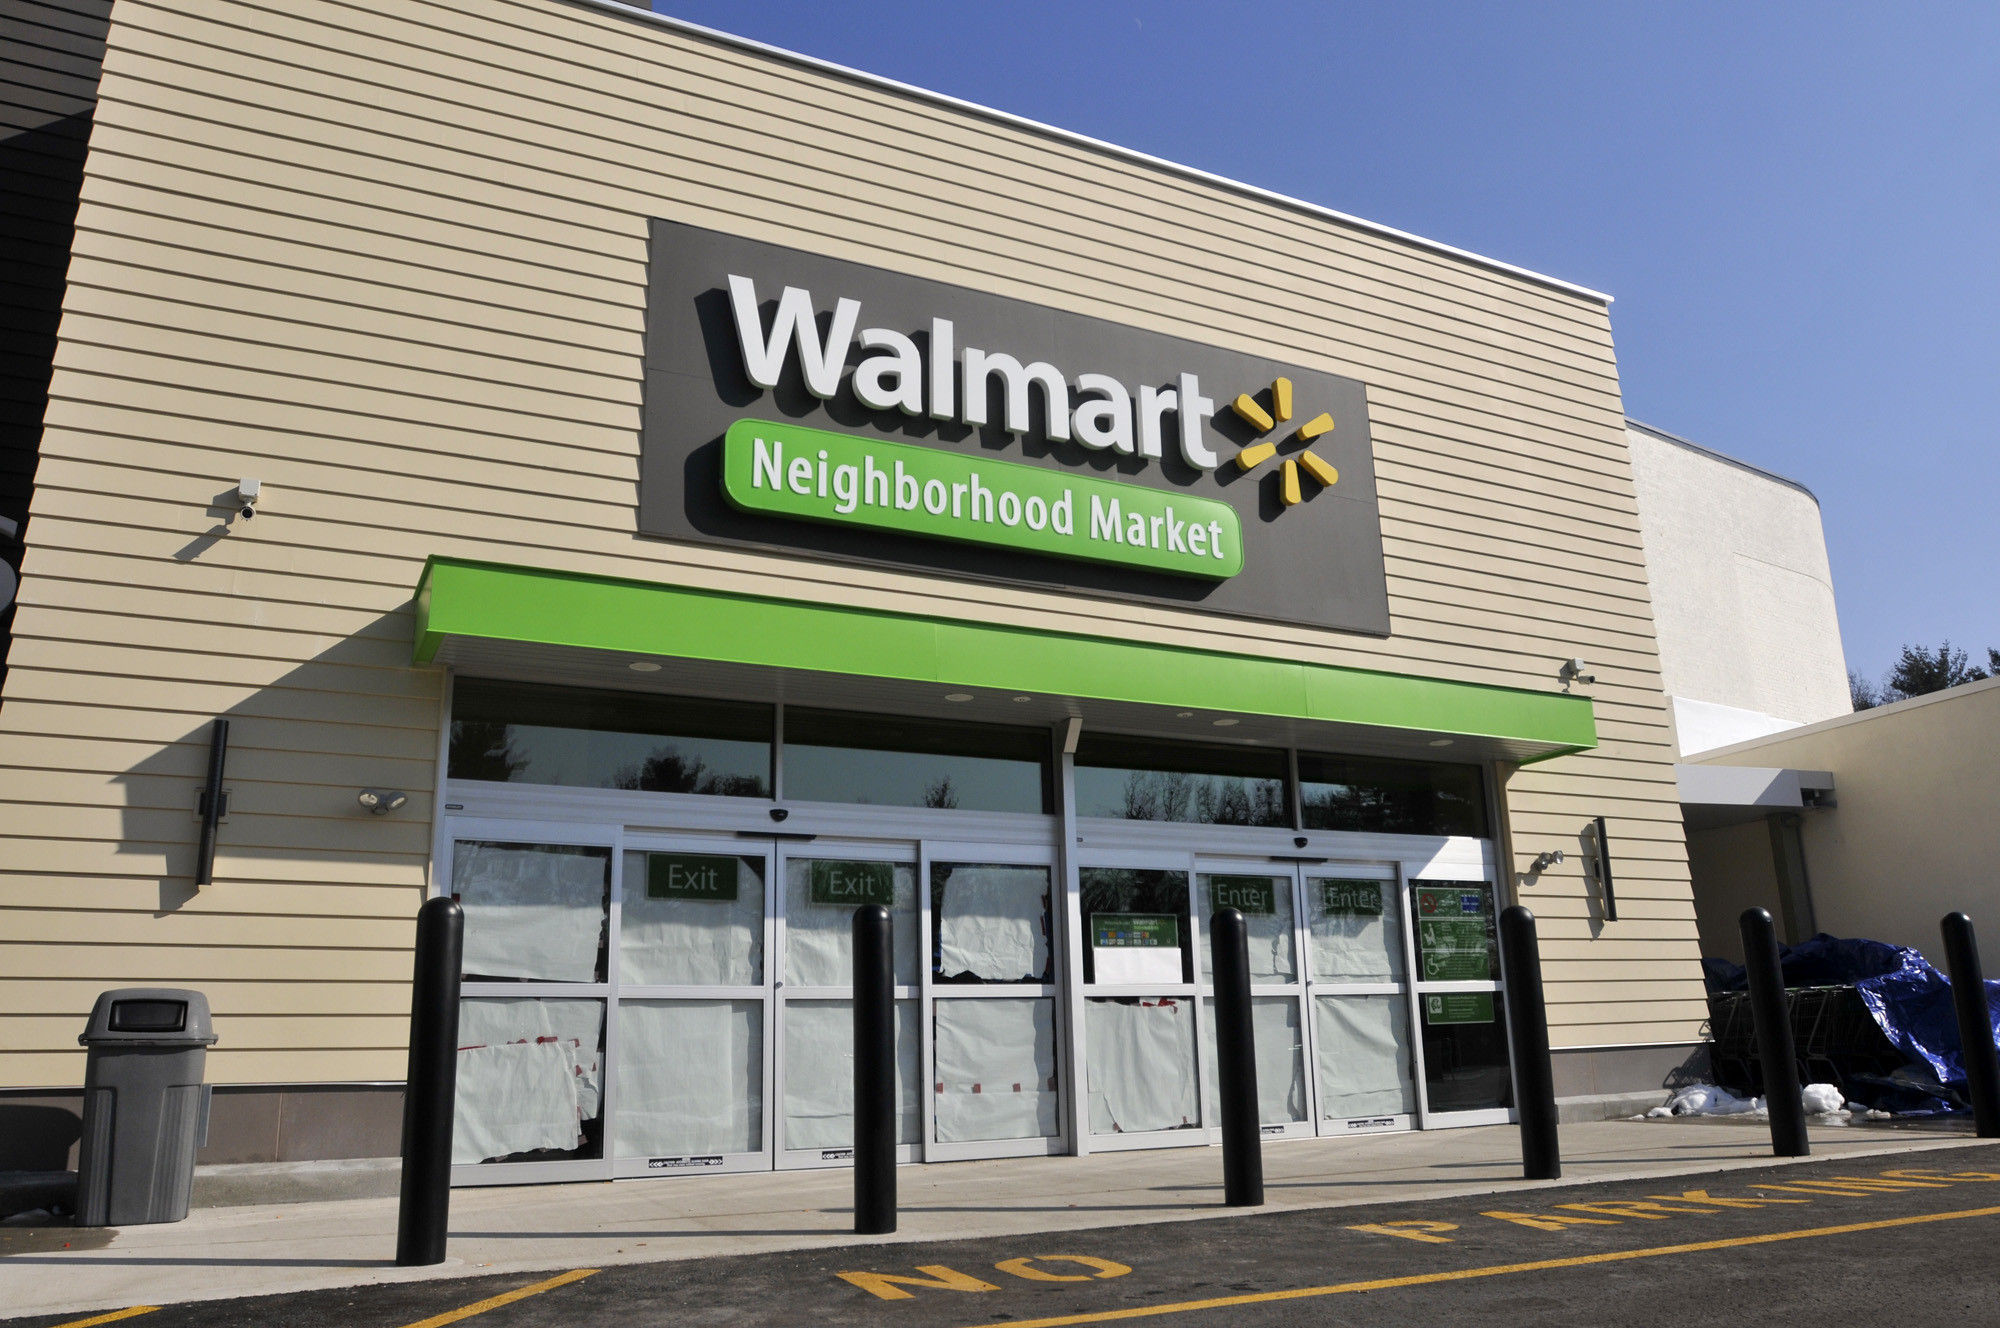 wal mart closing neighborhood market in west hartford 153 other stores in us hartford courant